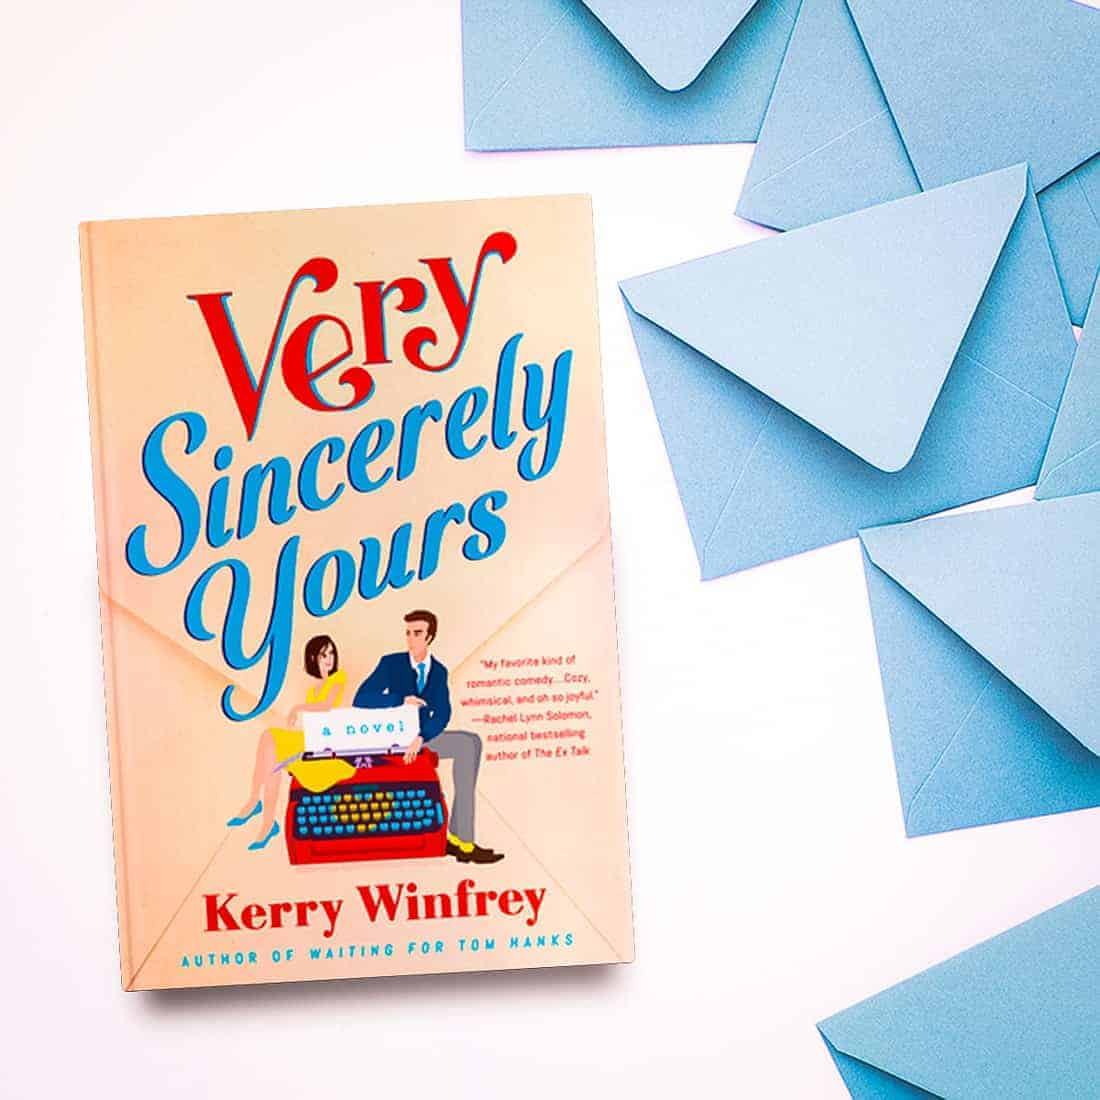 Read an exclusive excerpt from Very Sincerely Yours by Kerry Winfrey, a heartwarming and charming romance book from the author of Waiting for Tom Hanks